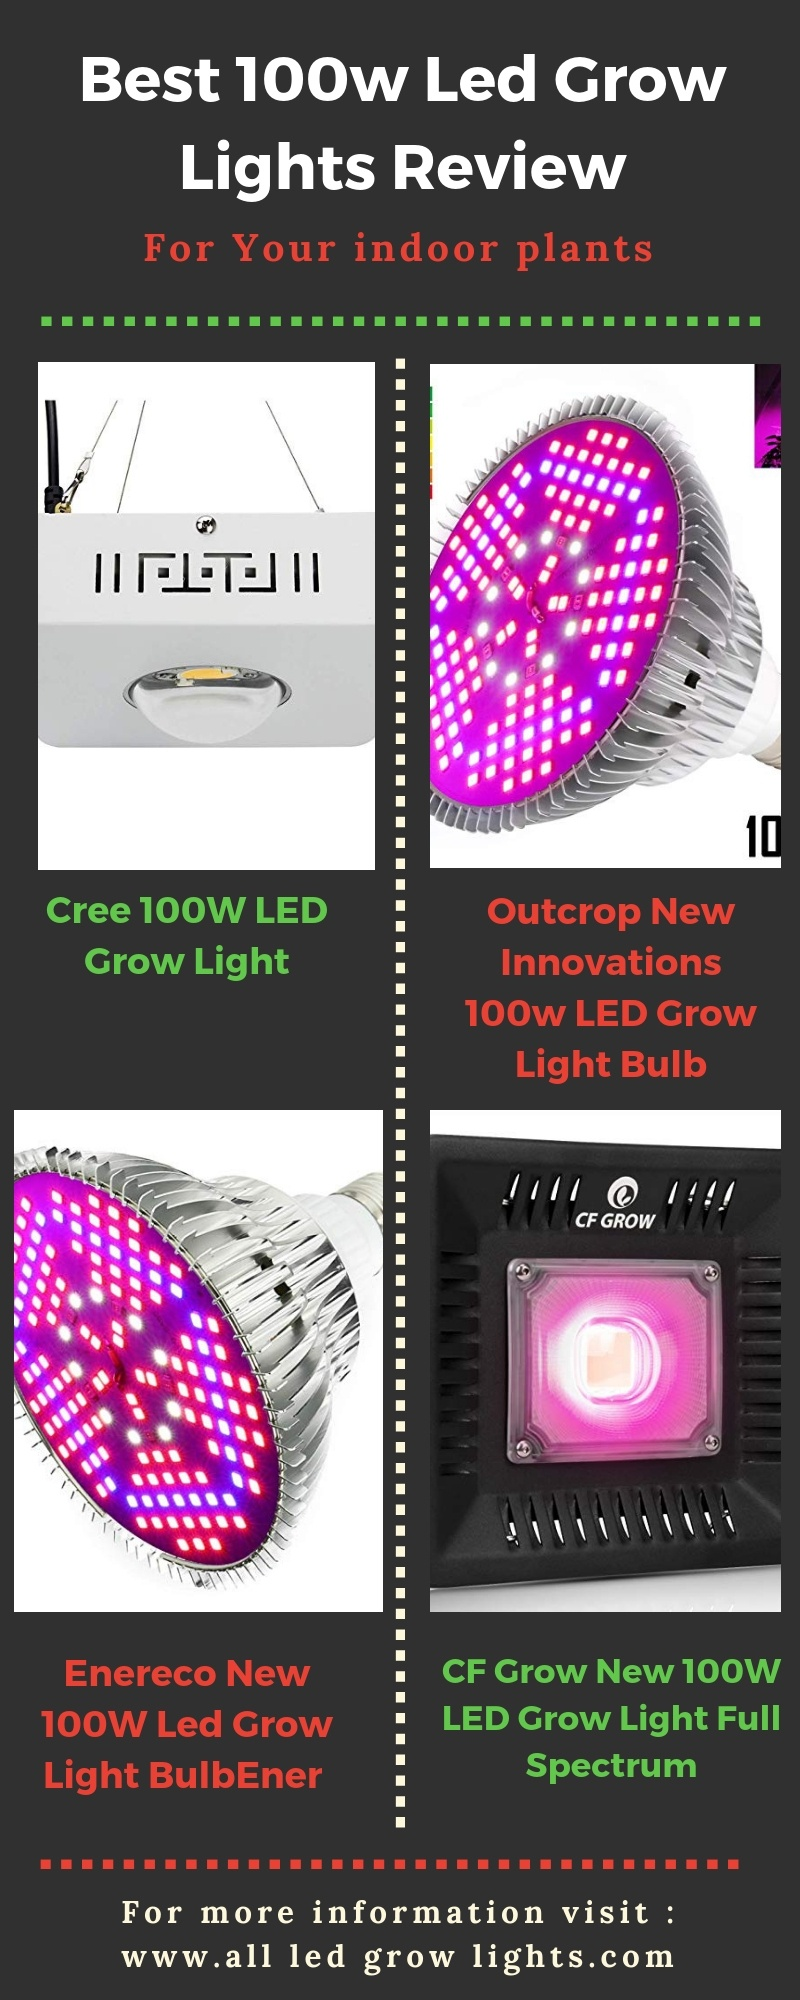 best 100w led grow light info graphics